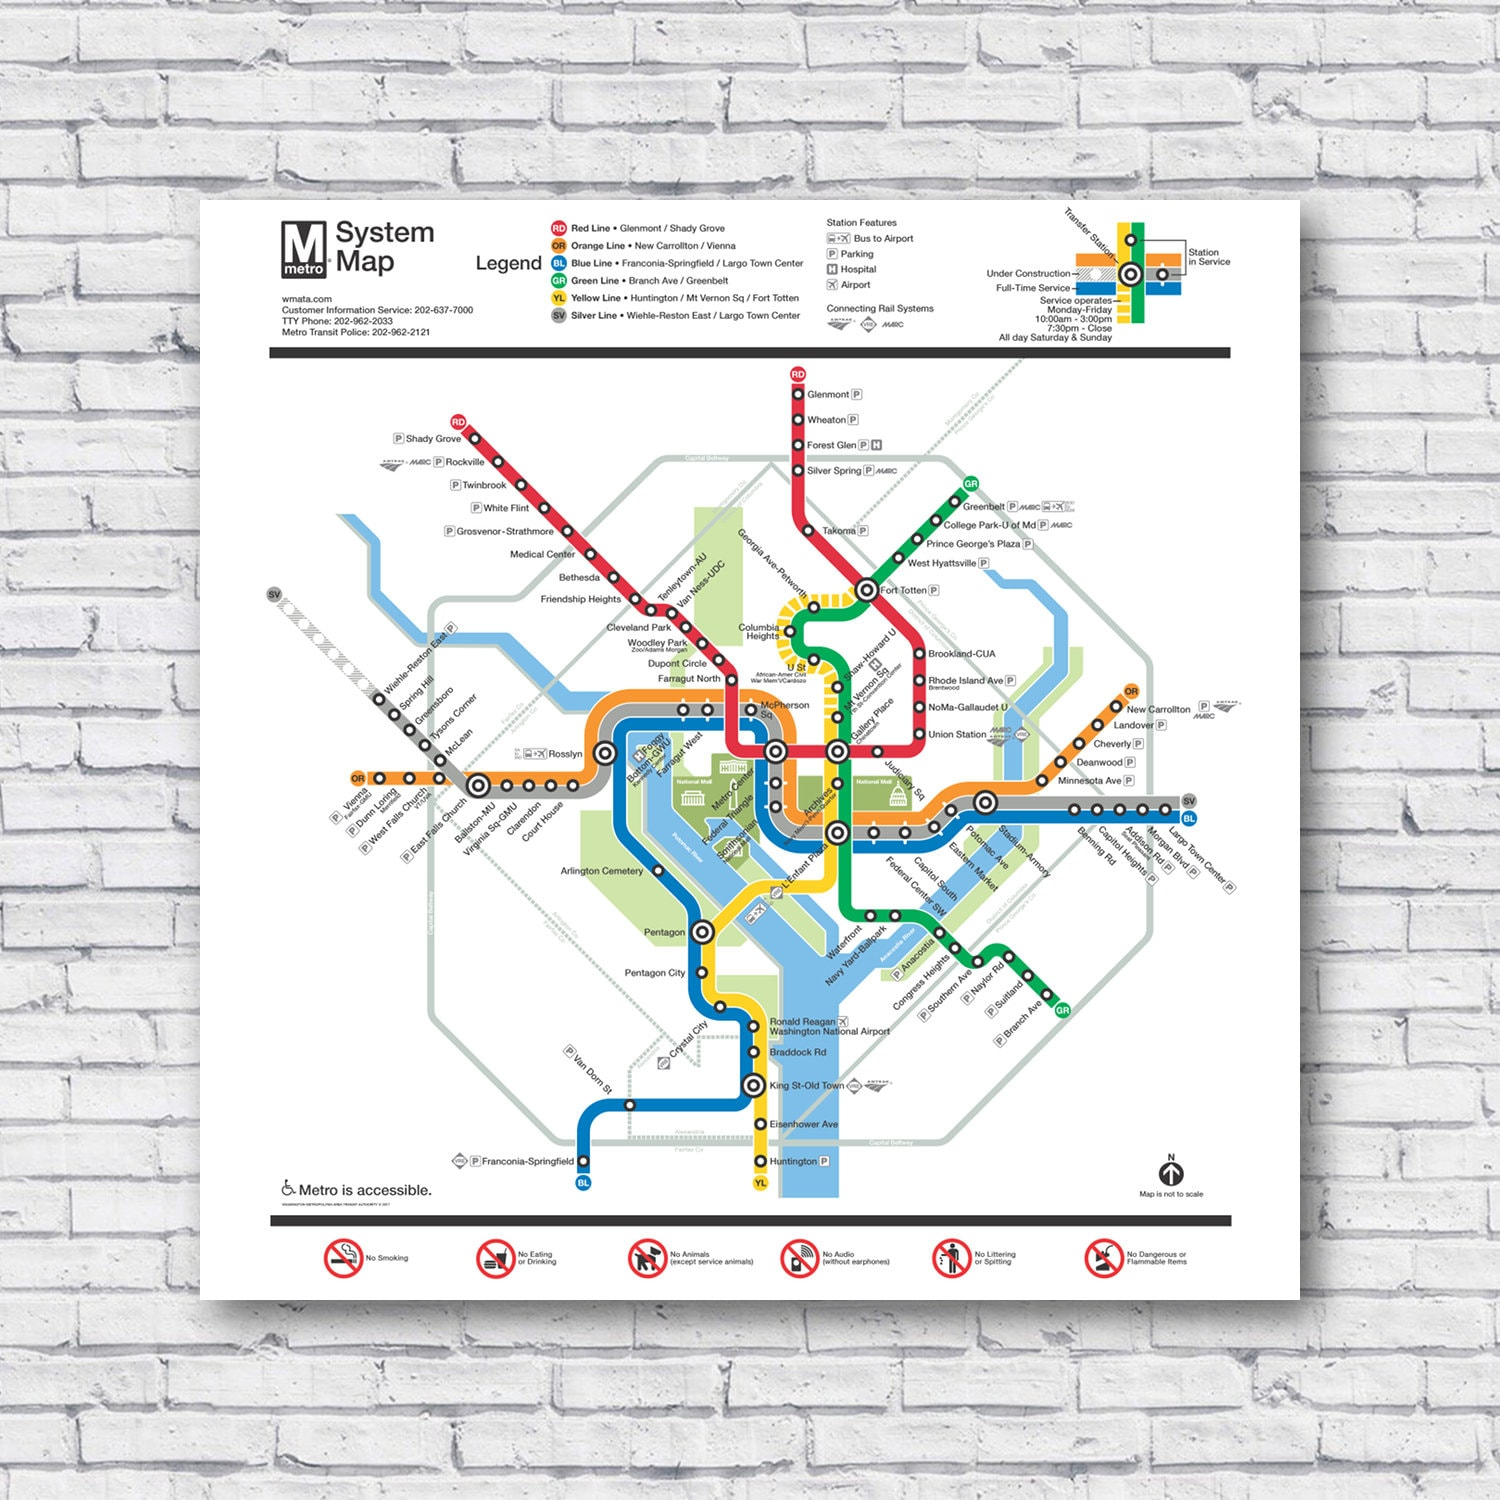 LARGE DC Subway Map, Washington DC Metro Map Poster Print Wall Art on washington geography map, chichagof island alaska map, washington land features, washington forest fire map, washington agriculture map, washington map potholes, washington county map, mossyrock washington map, washington game management unit map, hunter washington map, washington lighthouse map, washington wine regions map, washington national forest map, george mason university campus map, washington idaho-montana map, washington game unit 175 map, washington gas map, washington state, wa elk hunting areas map, washington on a map,